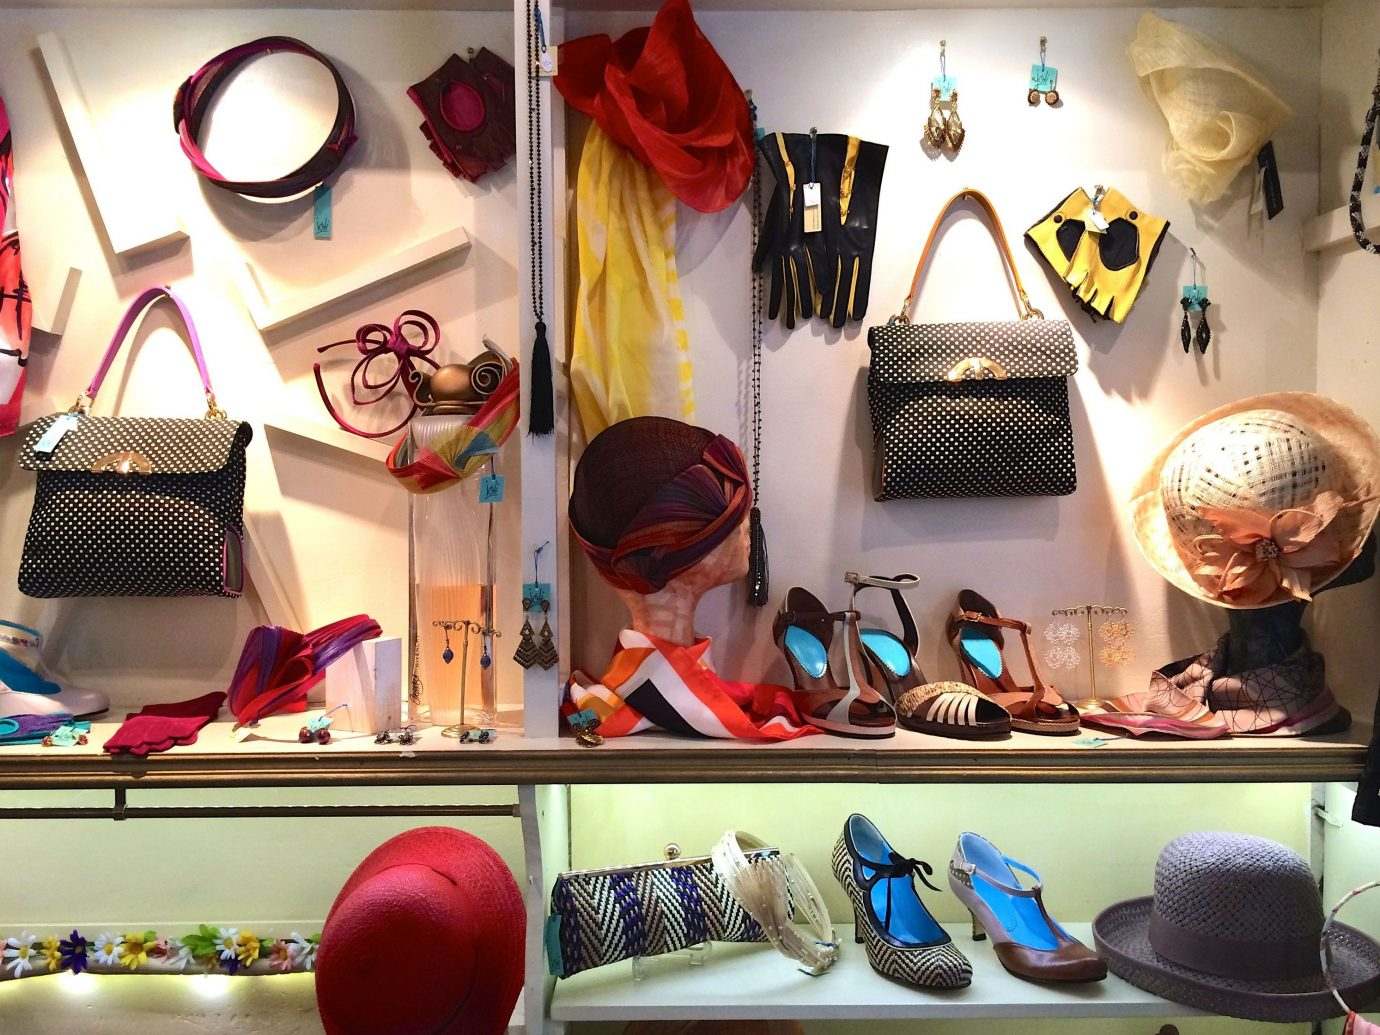 Trip Ideas wall indoor color art different items display window Boutique several